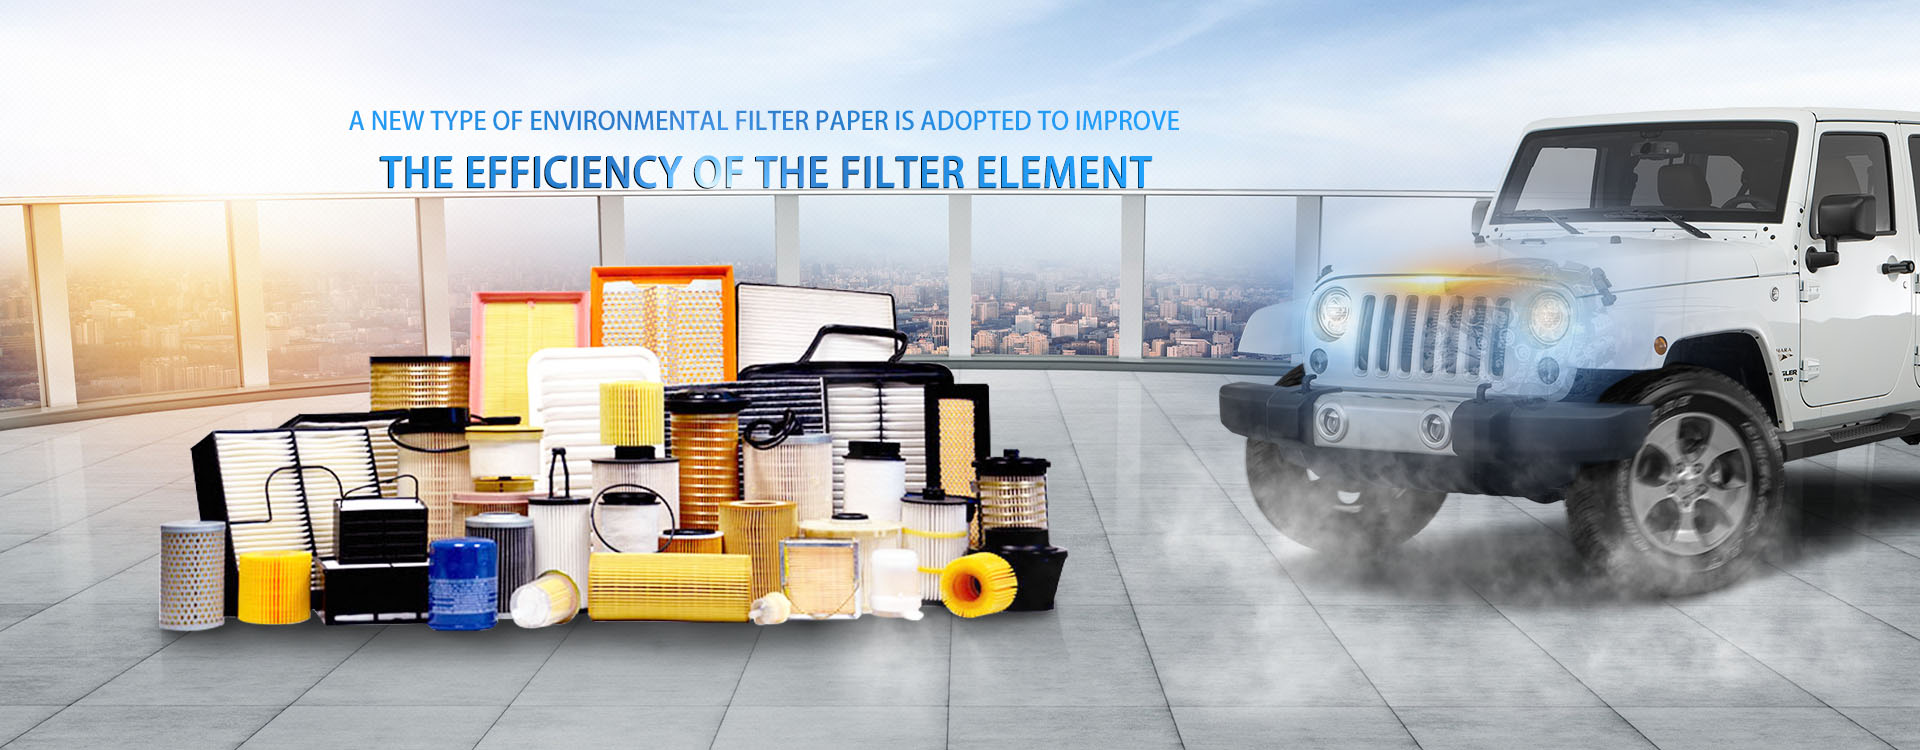 A new type of environmental filter paper is adopted to improve the efficiency of the filter element.